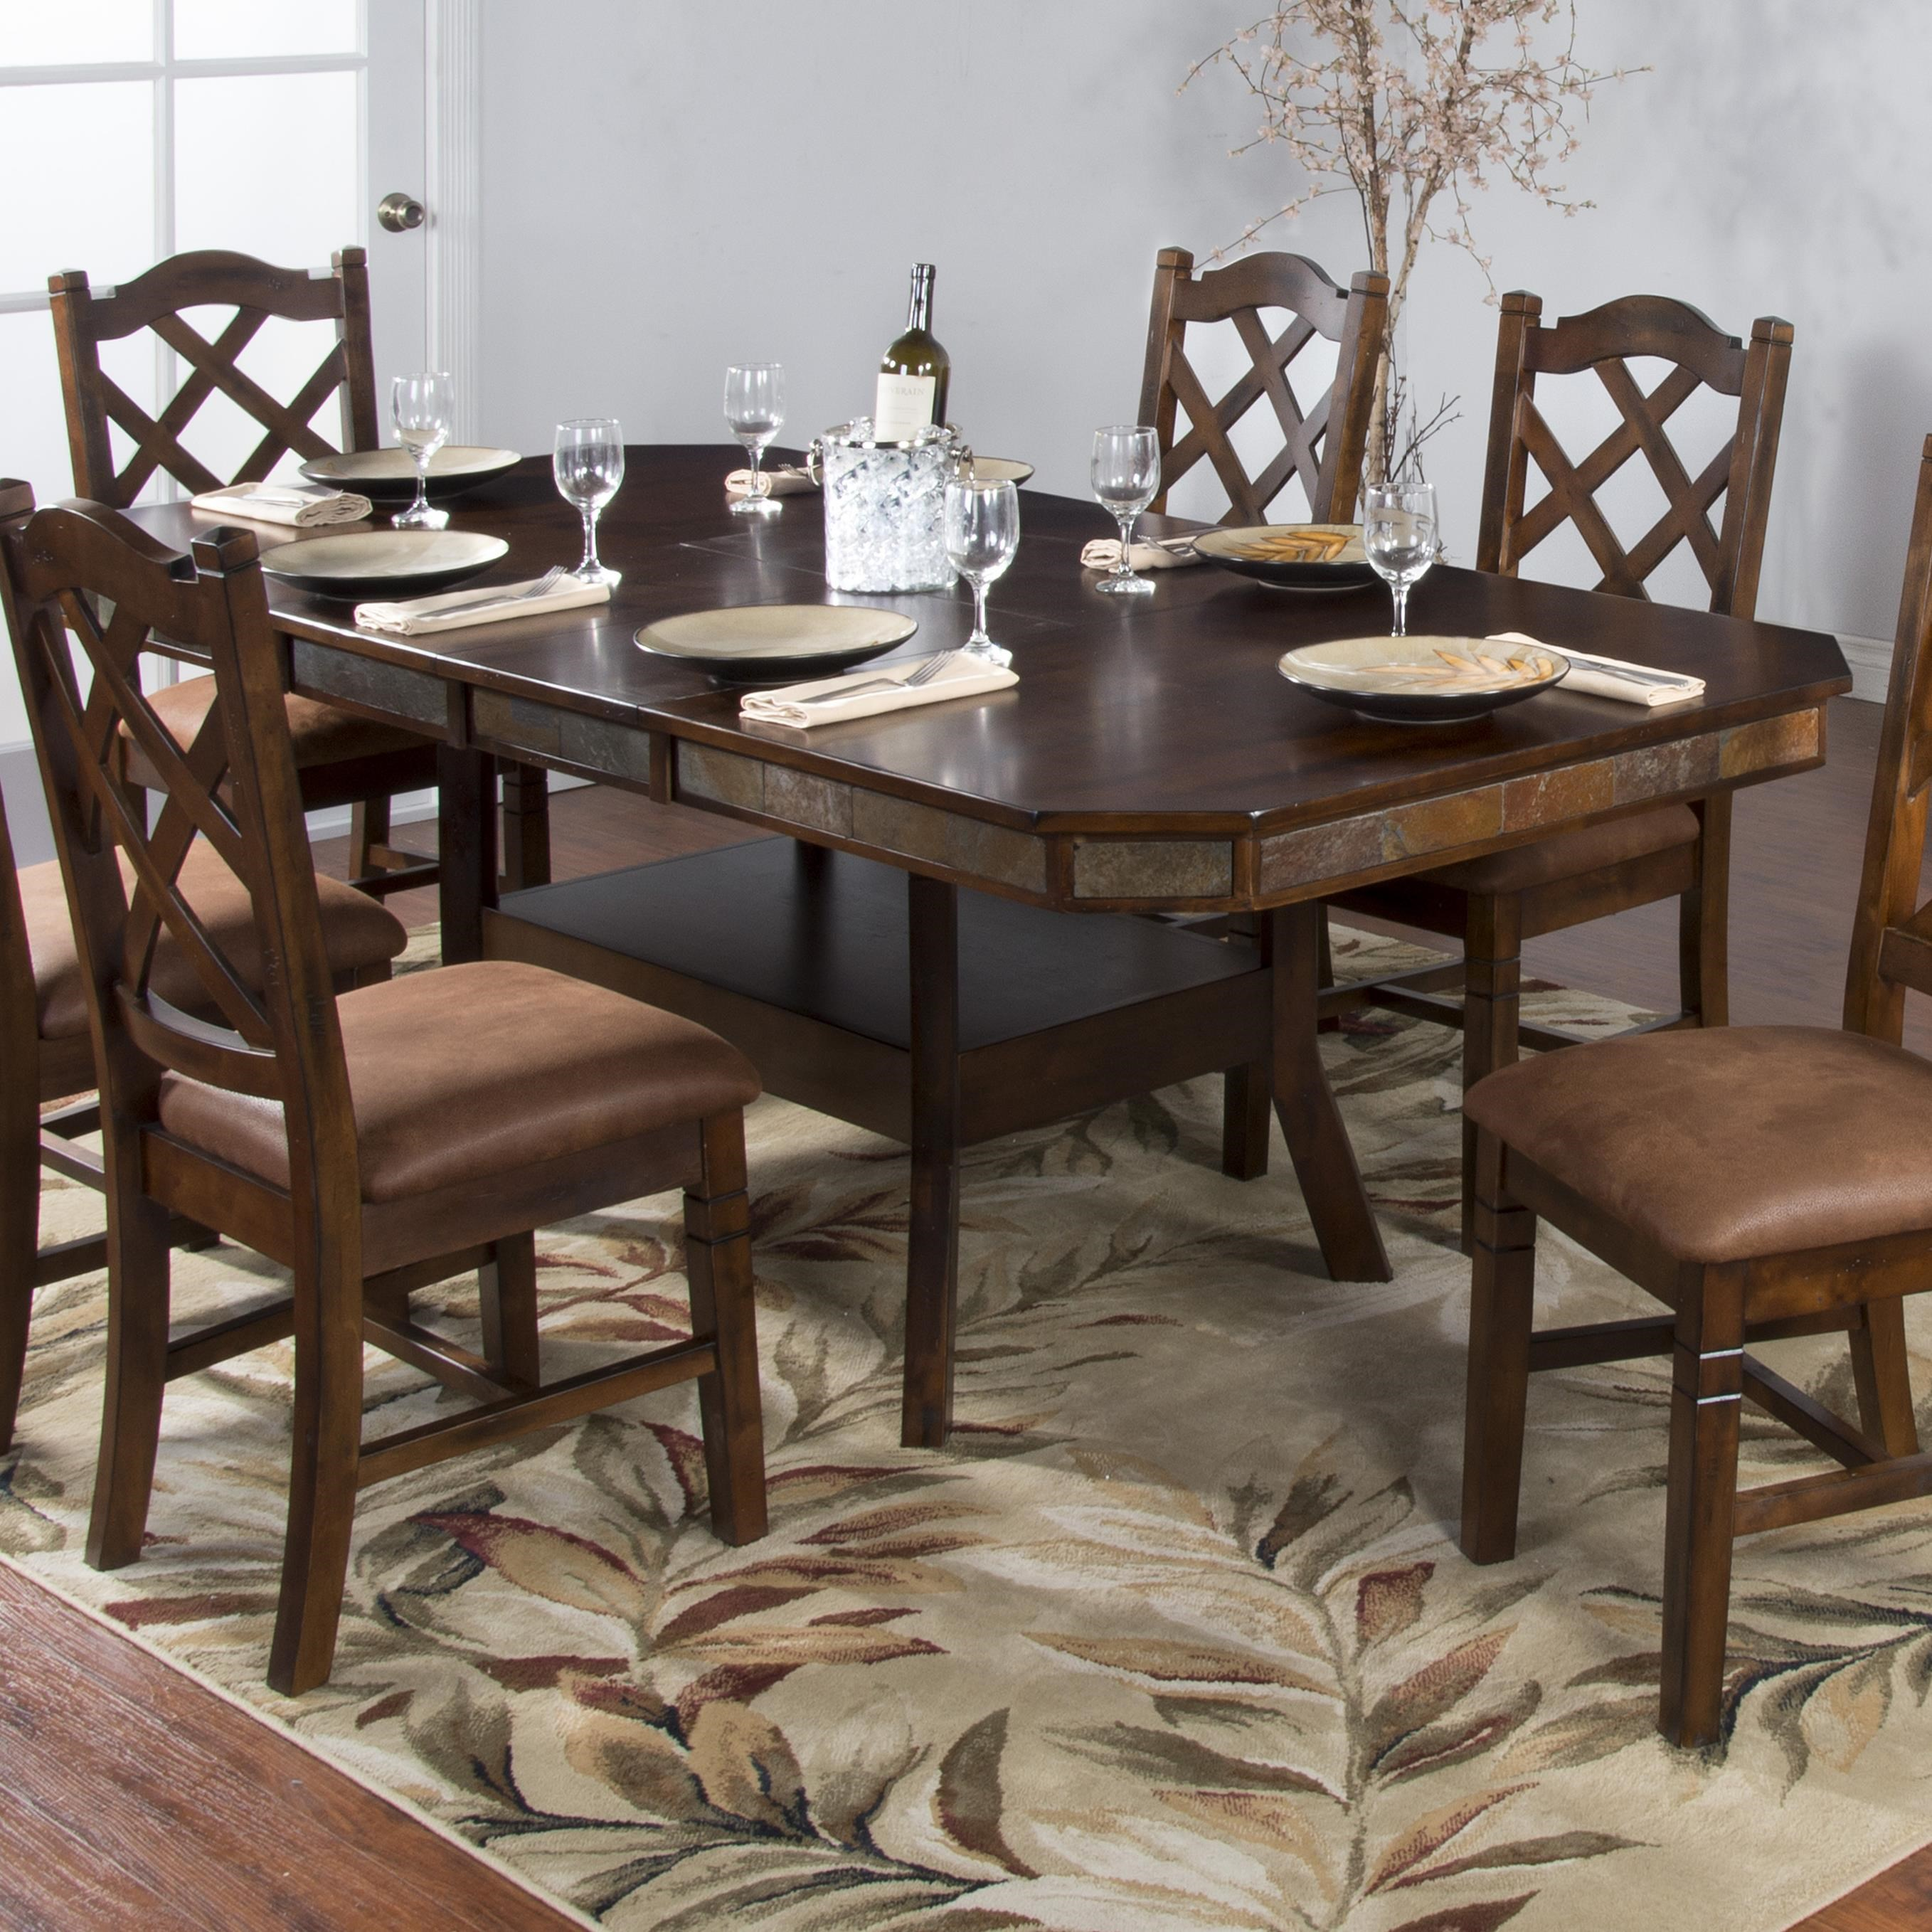 Sunny Designs Santa Fe Adjustable Height Dining Table W/ 2 Butterfly Leaves    Darvin Furniture   Pub Tables